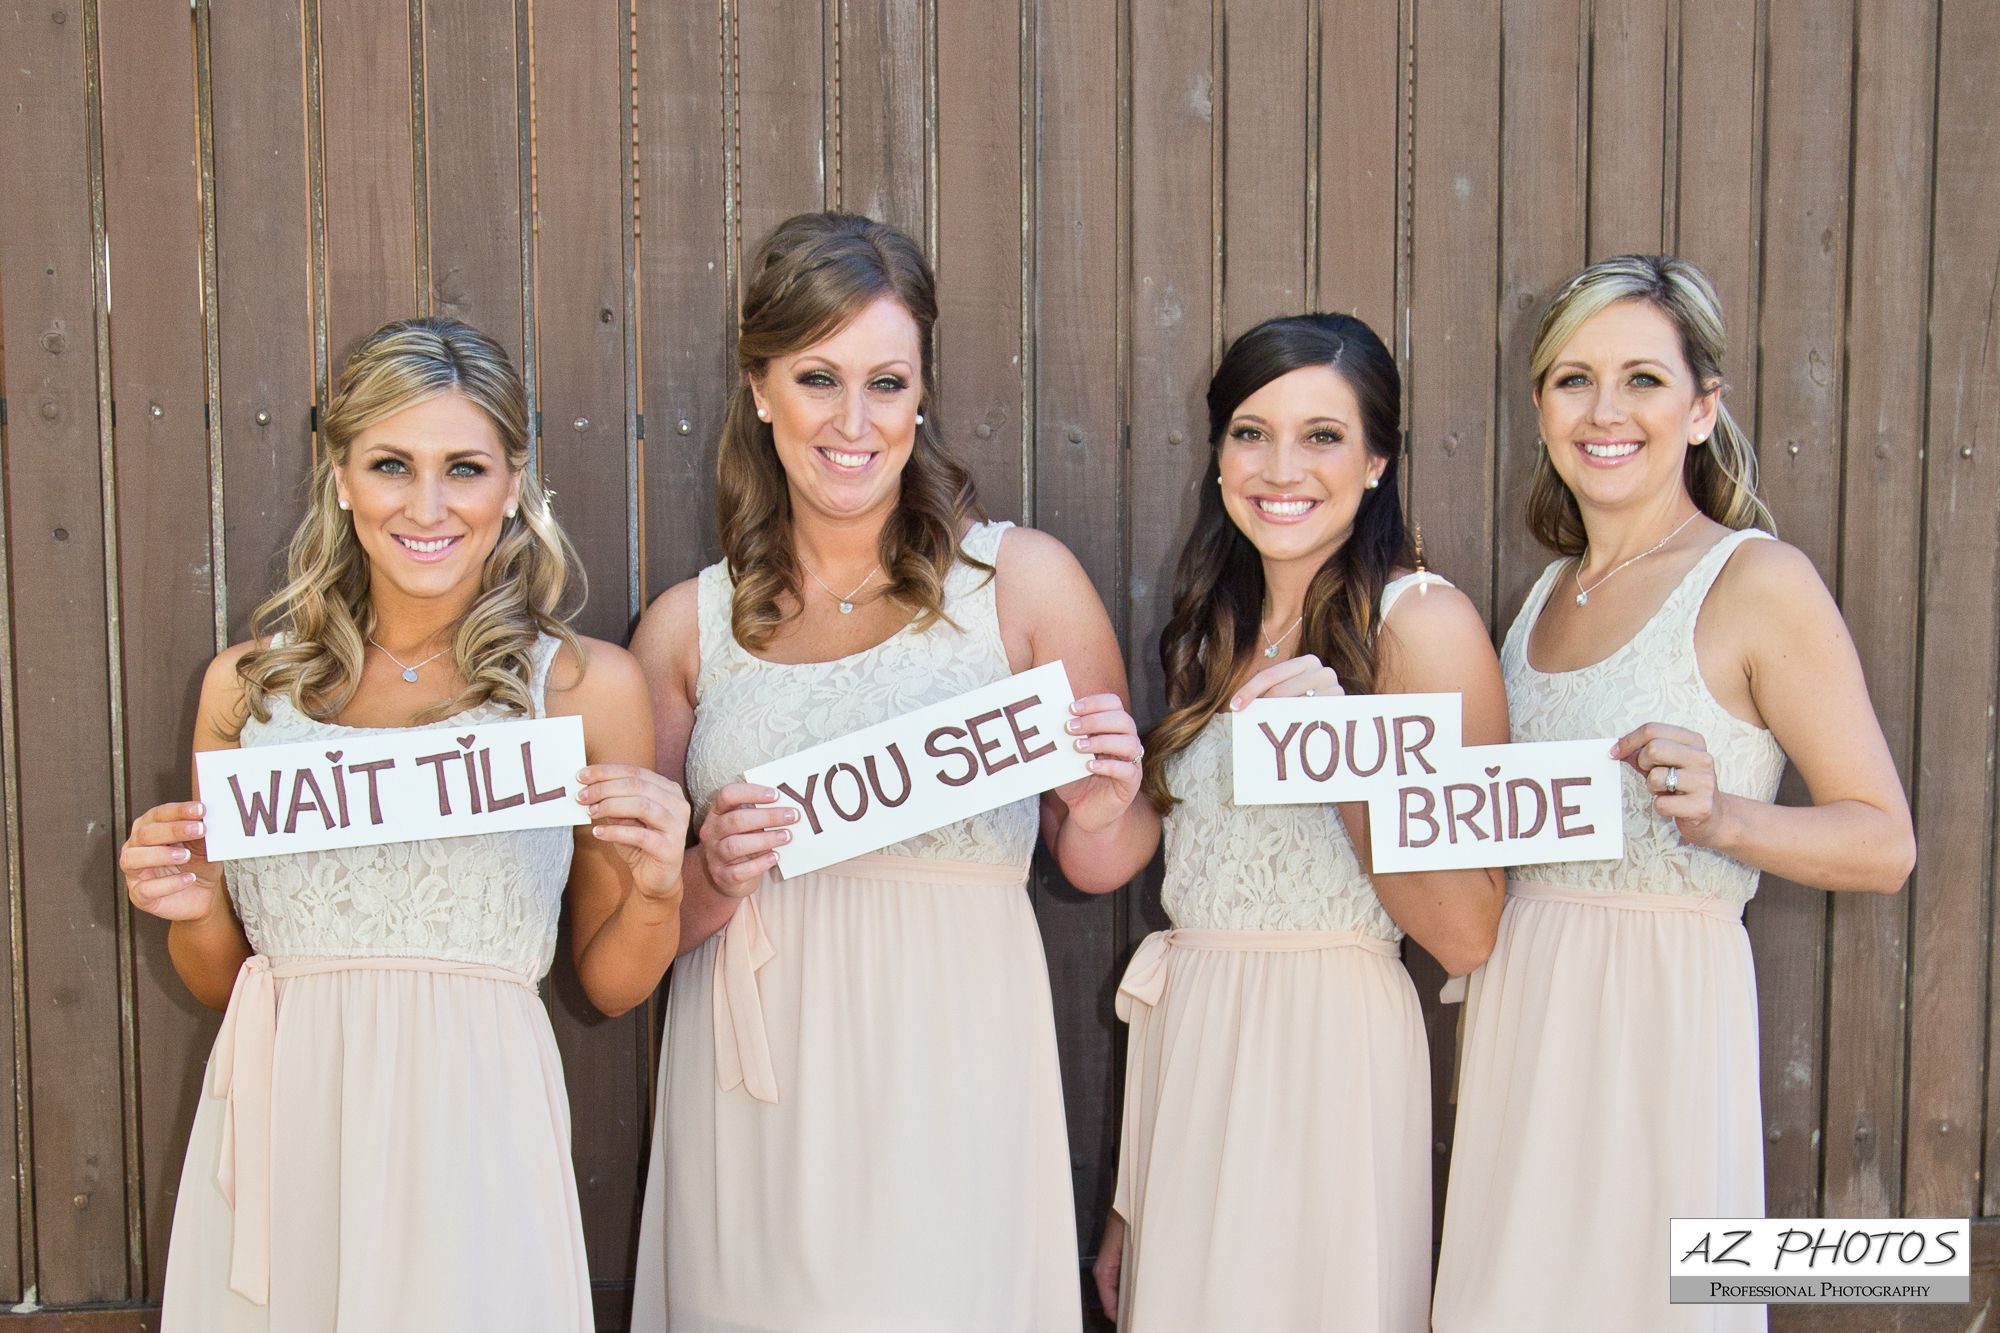 Wait till you see your bride signs i peach bridesmaids dresses i az wait till you see your bride signs i peach bridesmaids dresses i az photos ombrellifo Gallery